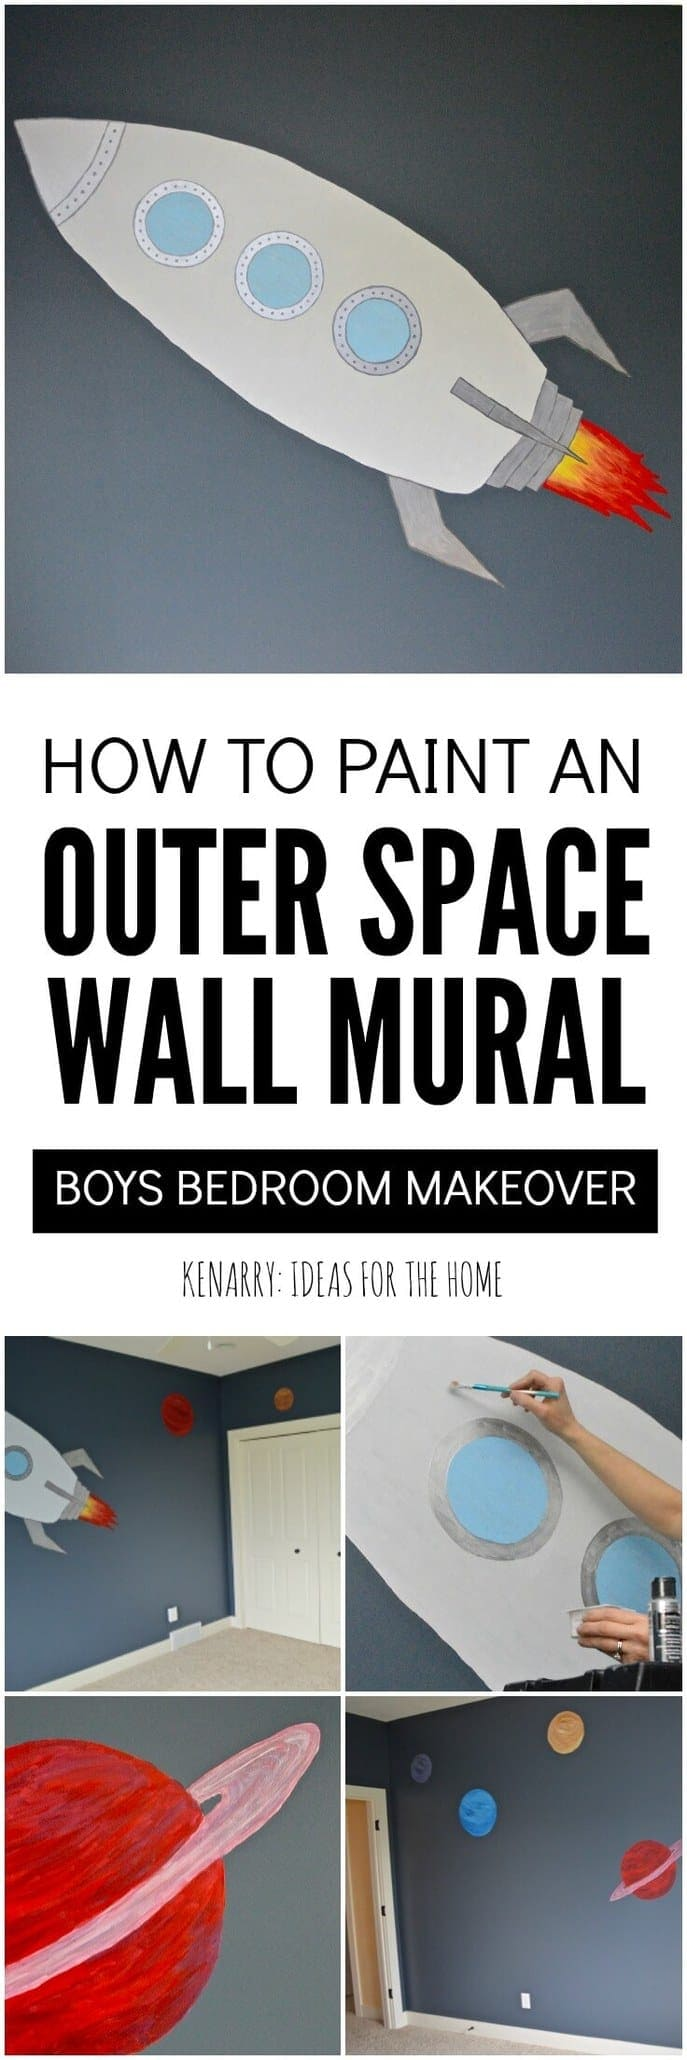 outer space mural tutorial for boys bedroom love this idea for creating an outer space bedroom for boys this tutorial makes it